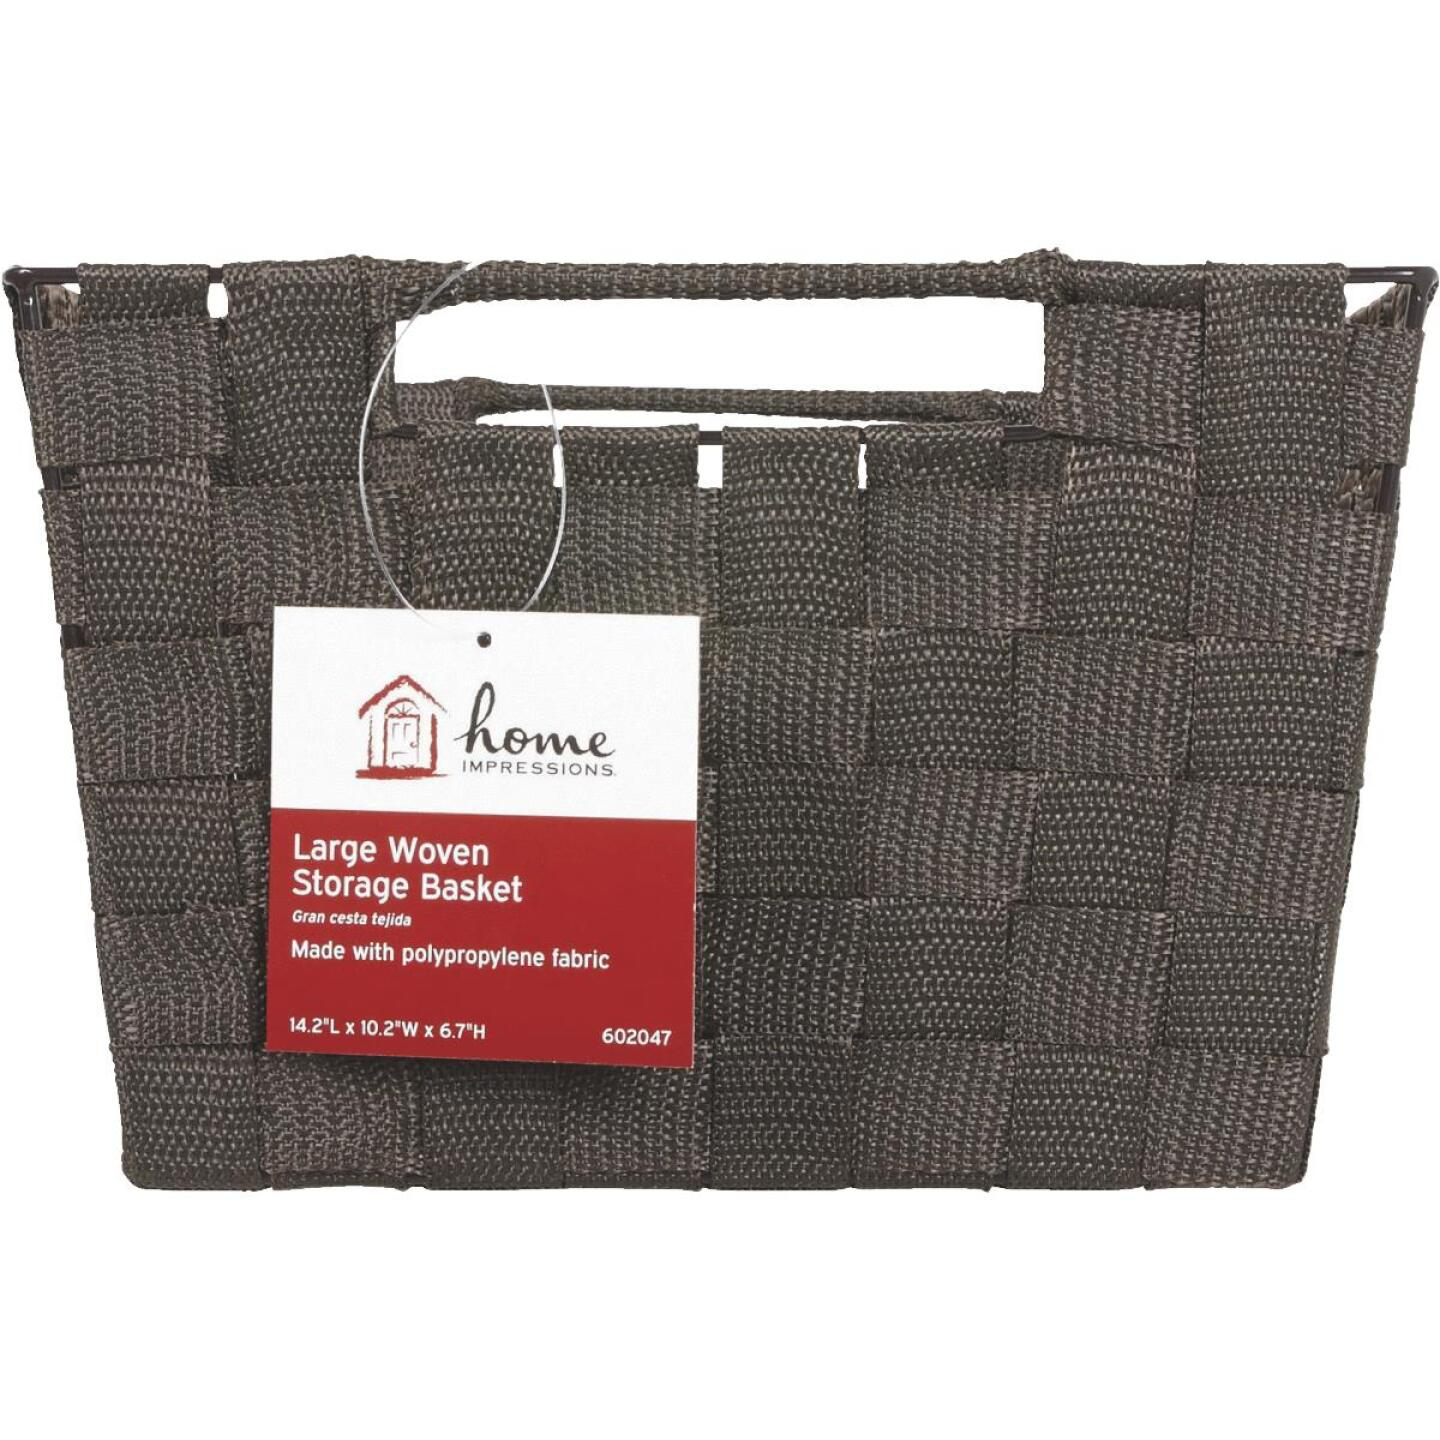 Home Impressions 10 In. W. x 6.75 In. H. x 14 In. L. Woven Storage Basket with Handles, Brown Image 2